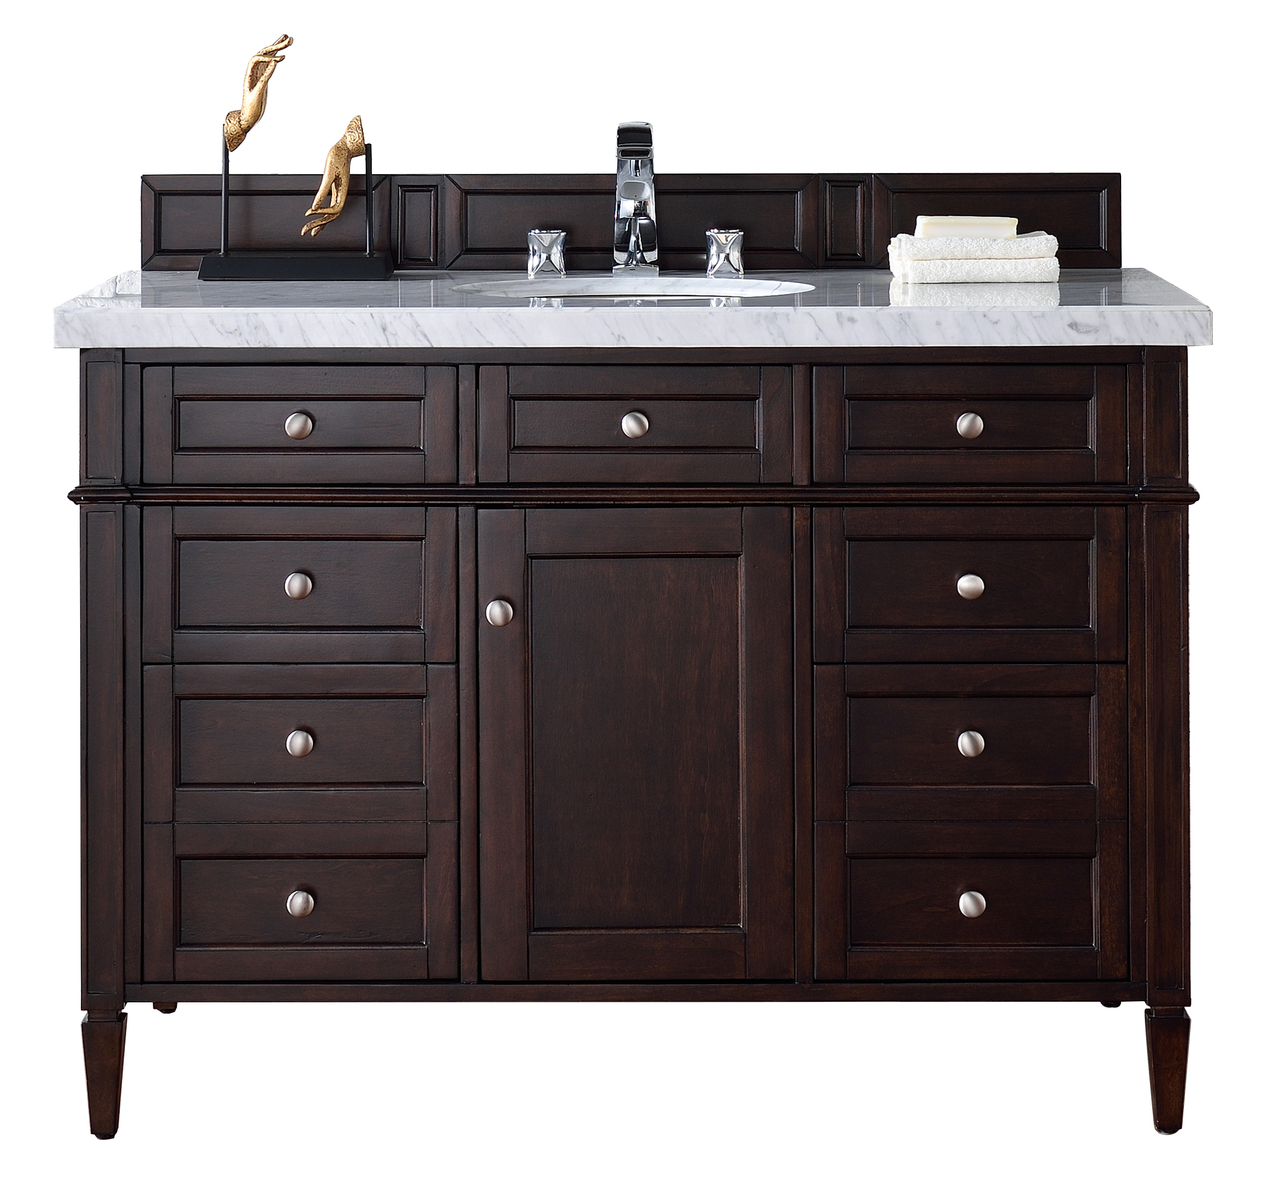 48 inch single contemporary bathroom vanity mahogany finish optional